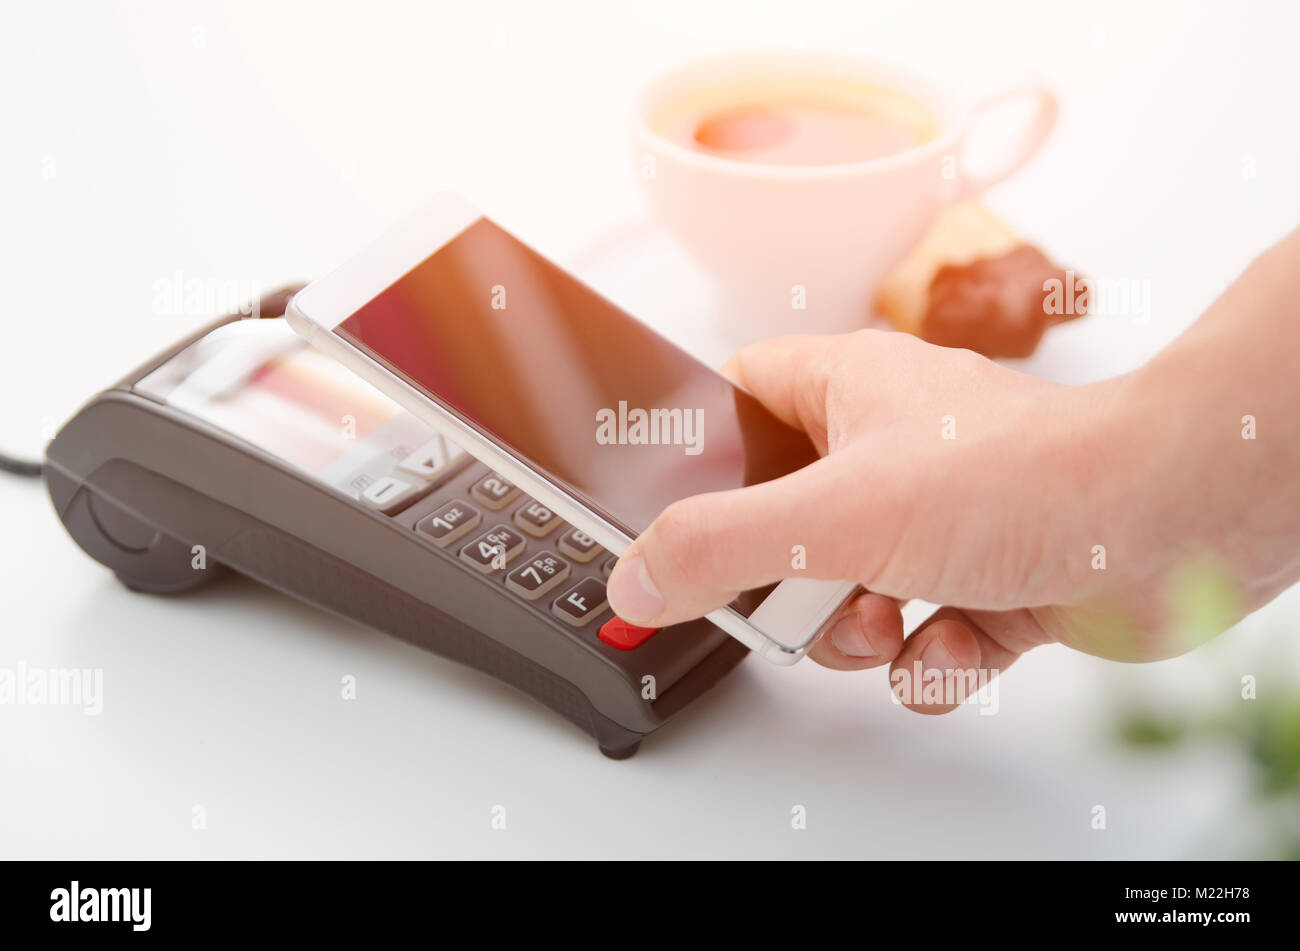 Mobile Payment Stock Photos & Mobile Payment Stock Images